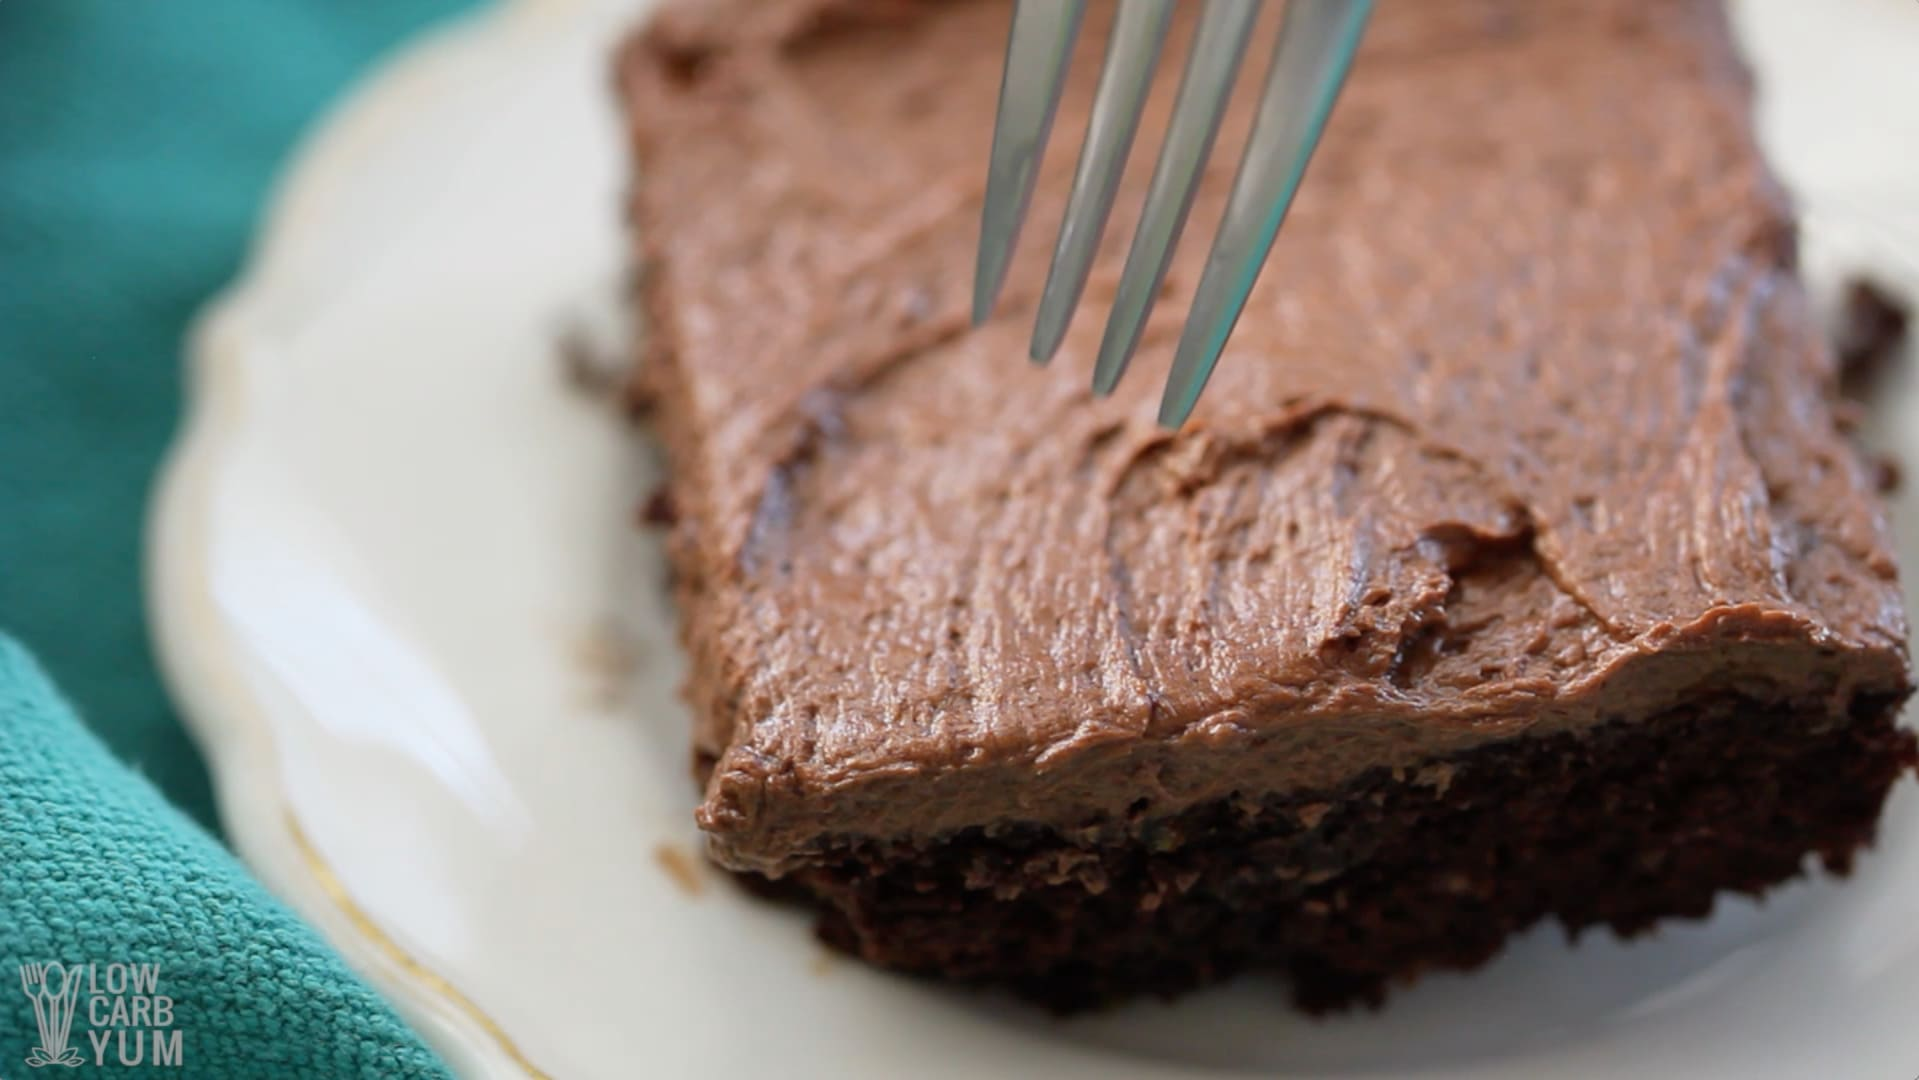 Best Low Carb Chocolate Cake Recipe Gluten Free Low Carb Yum - Sliced chocolate is finally here and we know our life will never be the same again